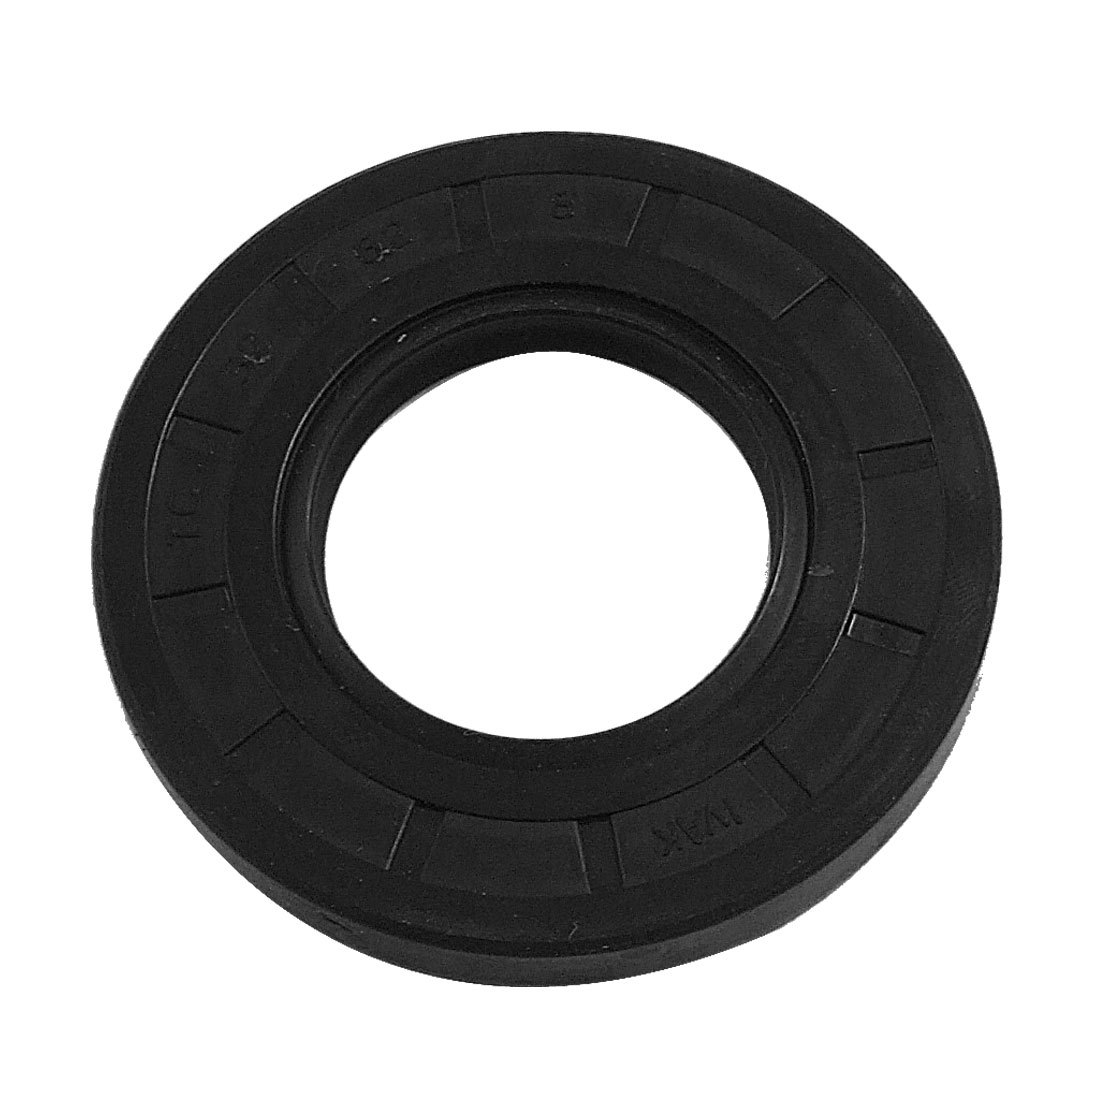 Black Nitrile Rubber Double Lip Oil Shaft Seal TC 32mm x 62mm x 8mm